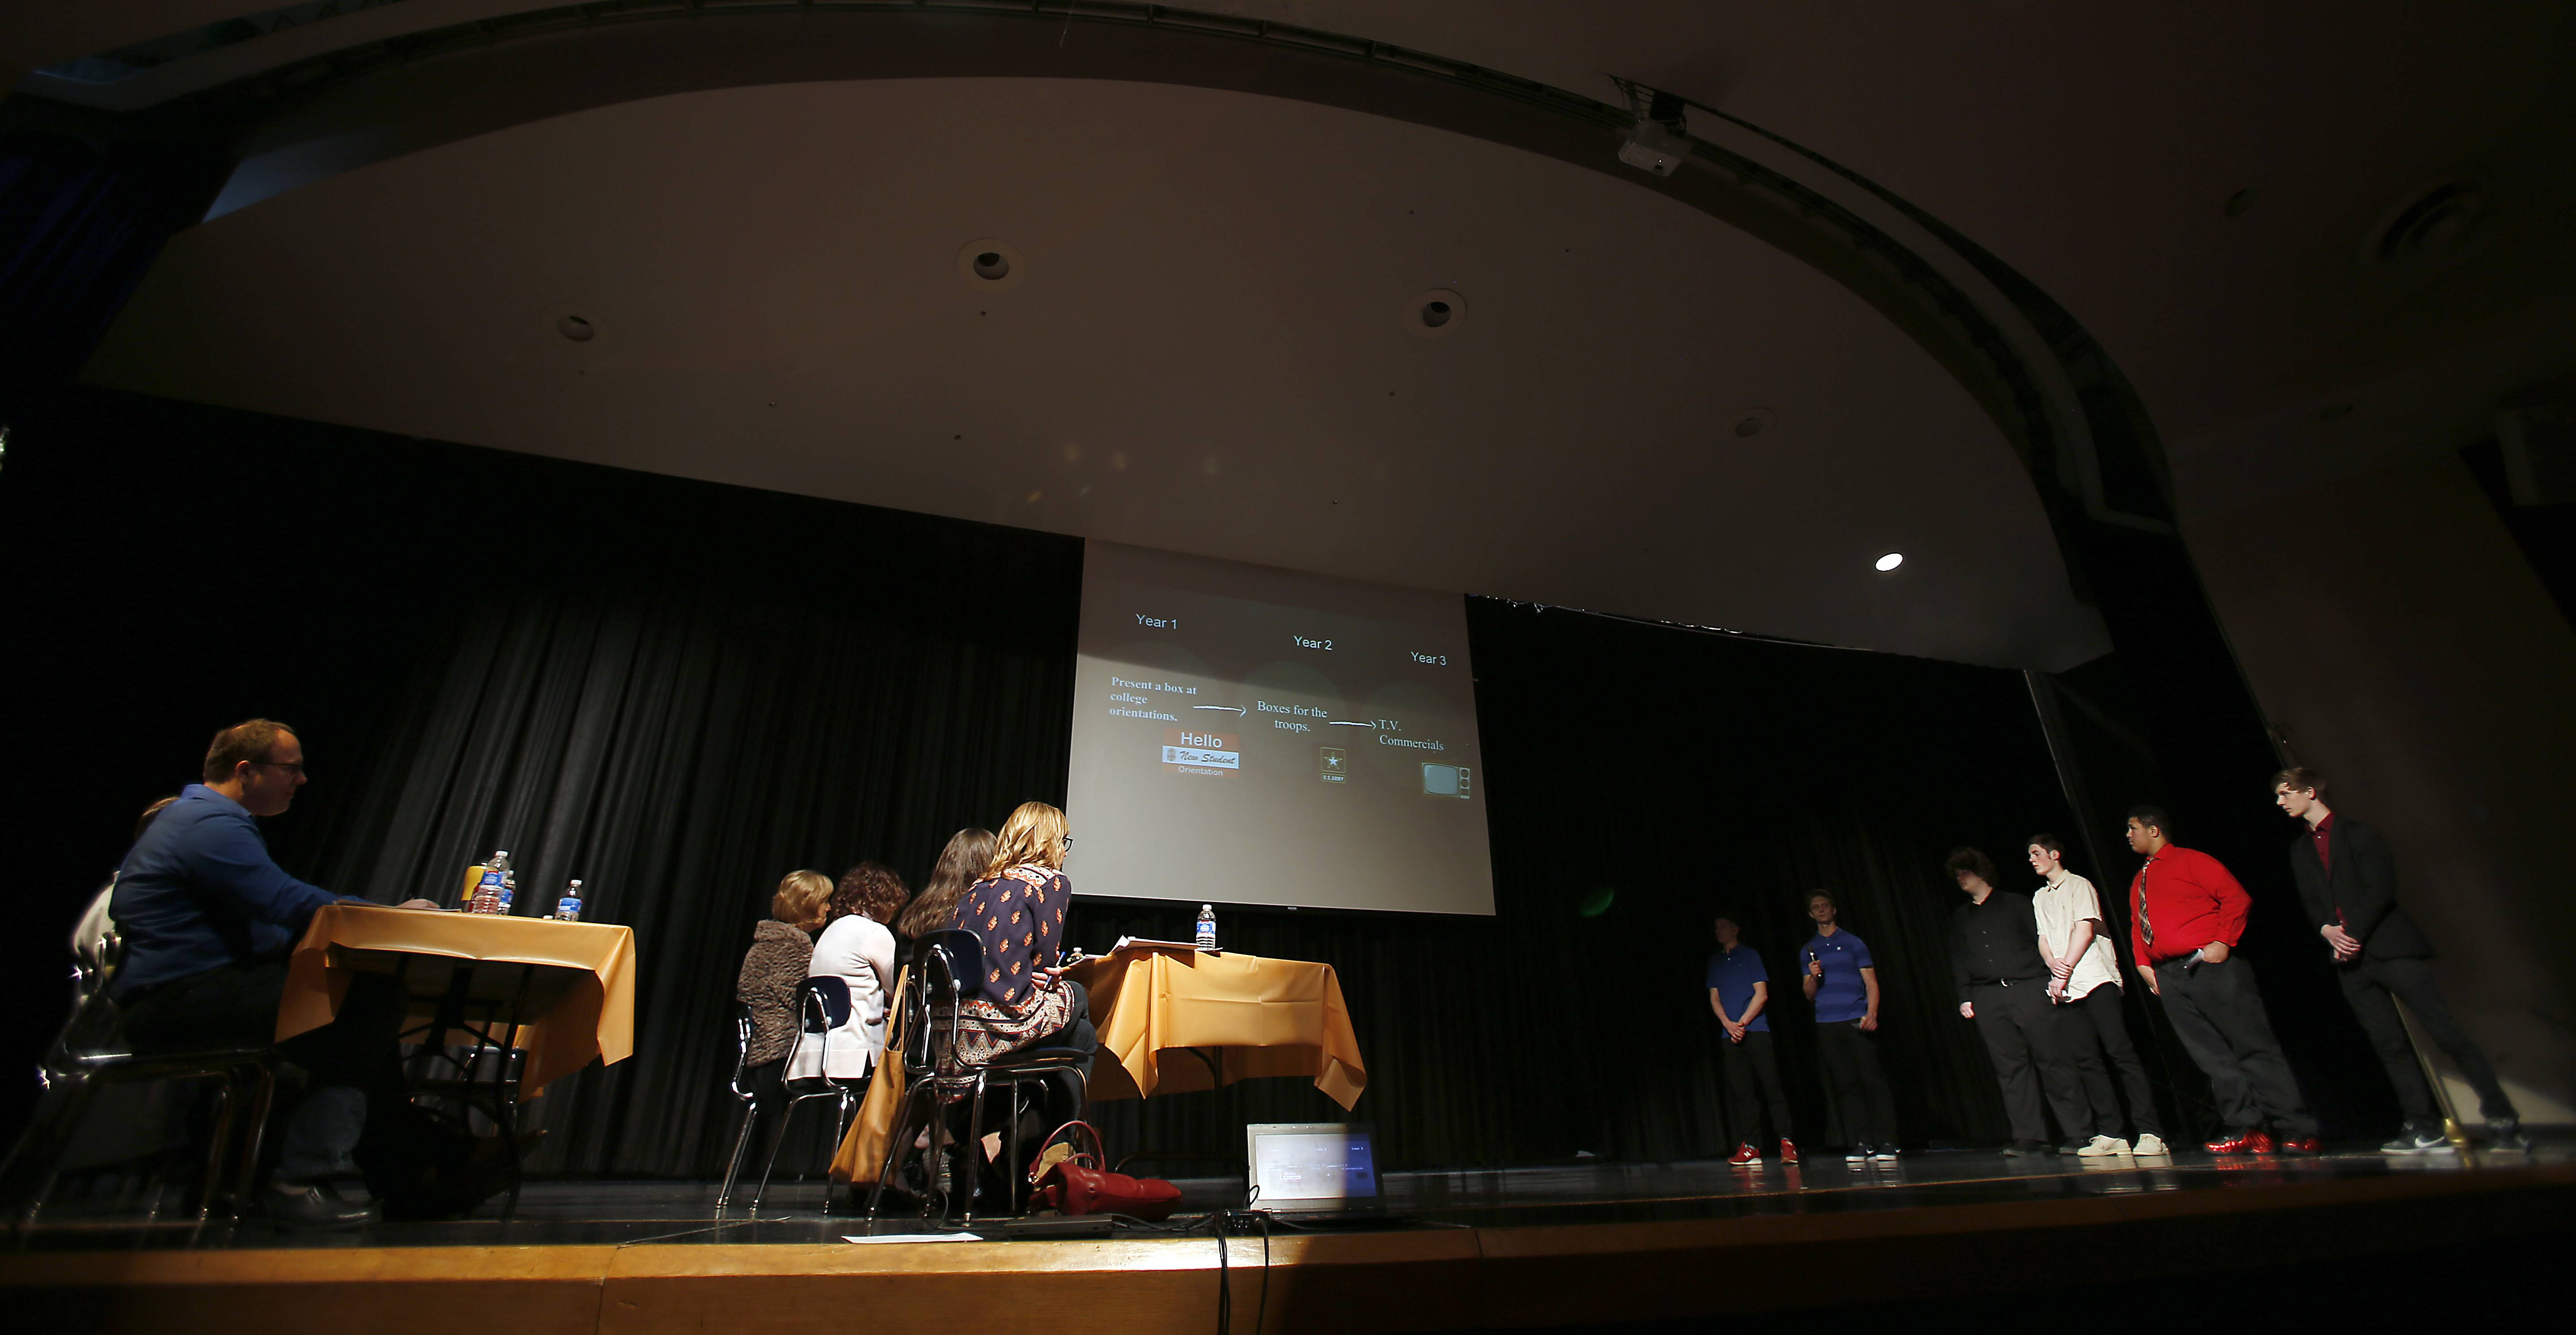 Students in the Business INCubator class at Dundee-Crown High School present their idea for a small business, MaleBox, to a group of investors Tuesday in the high school's auditorium.